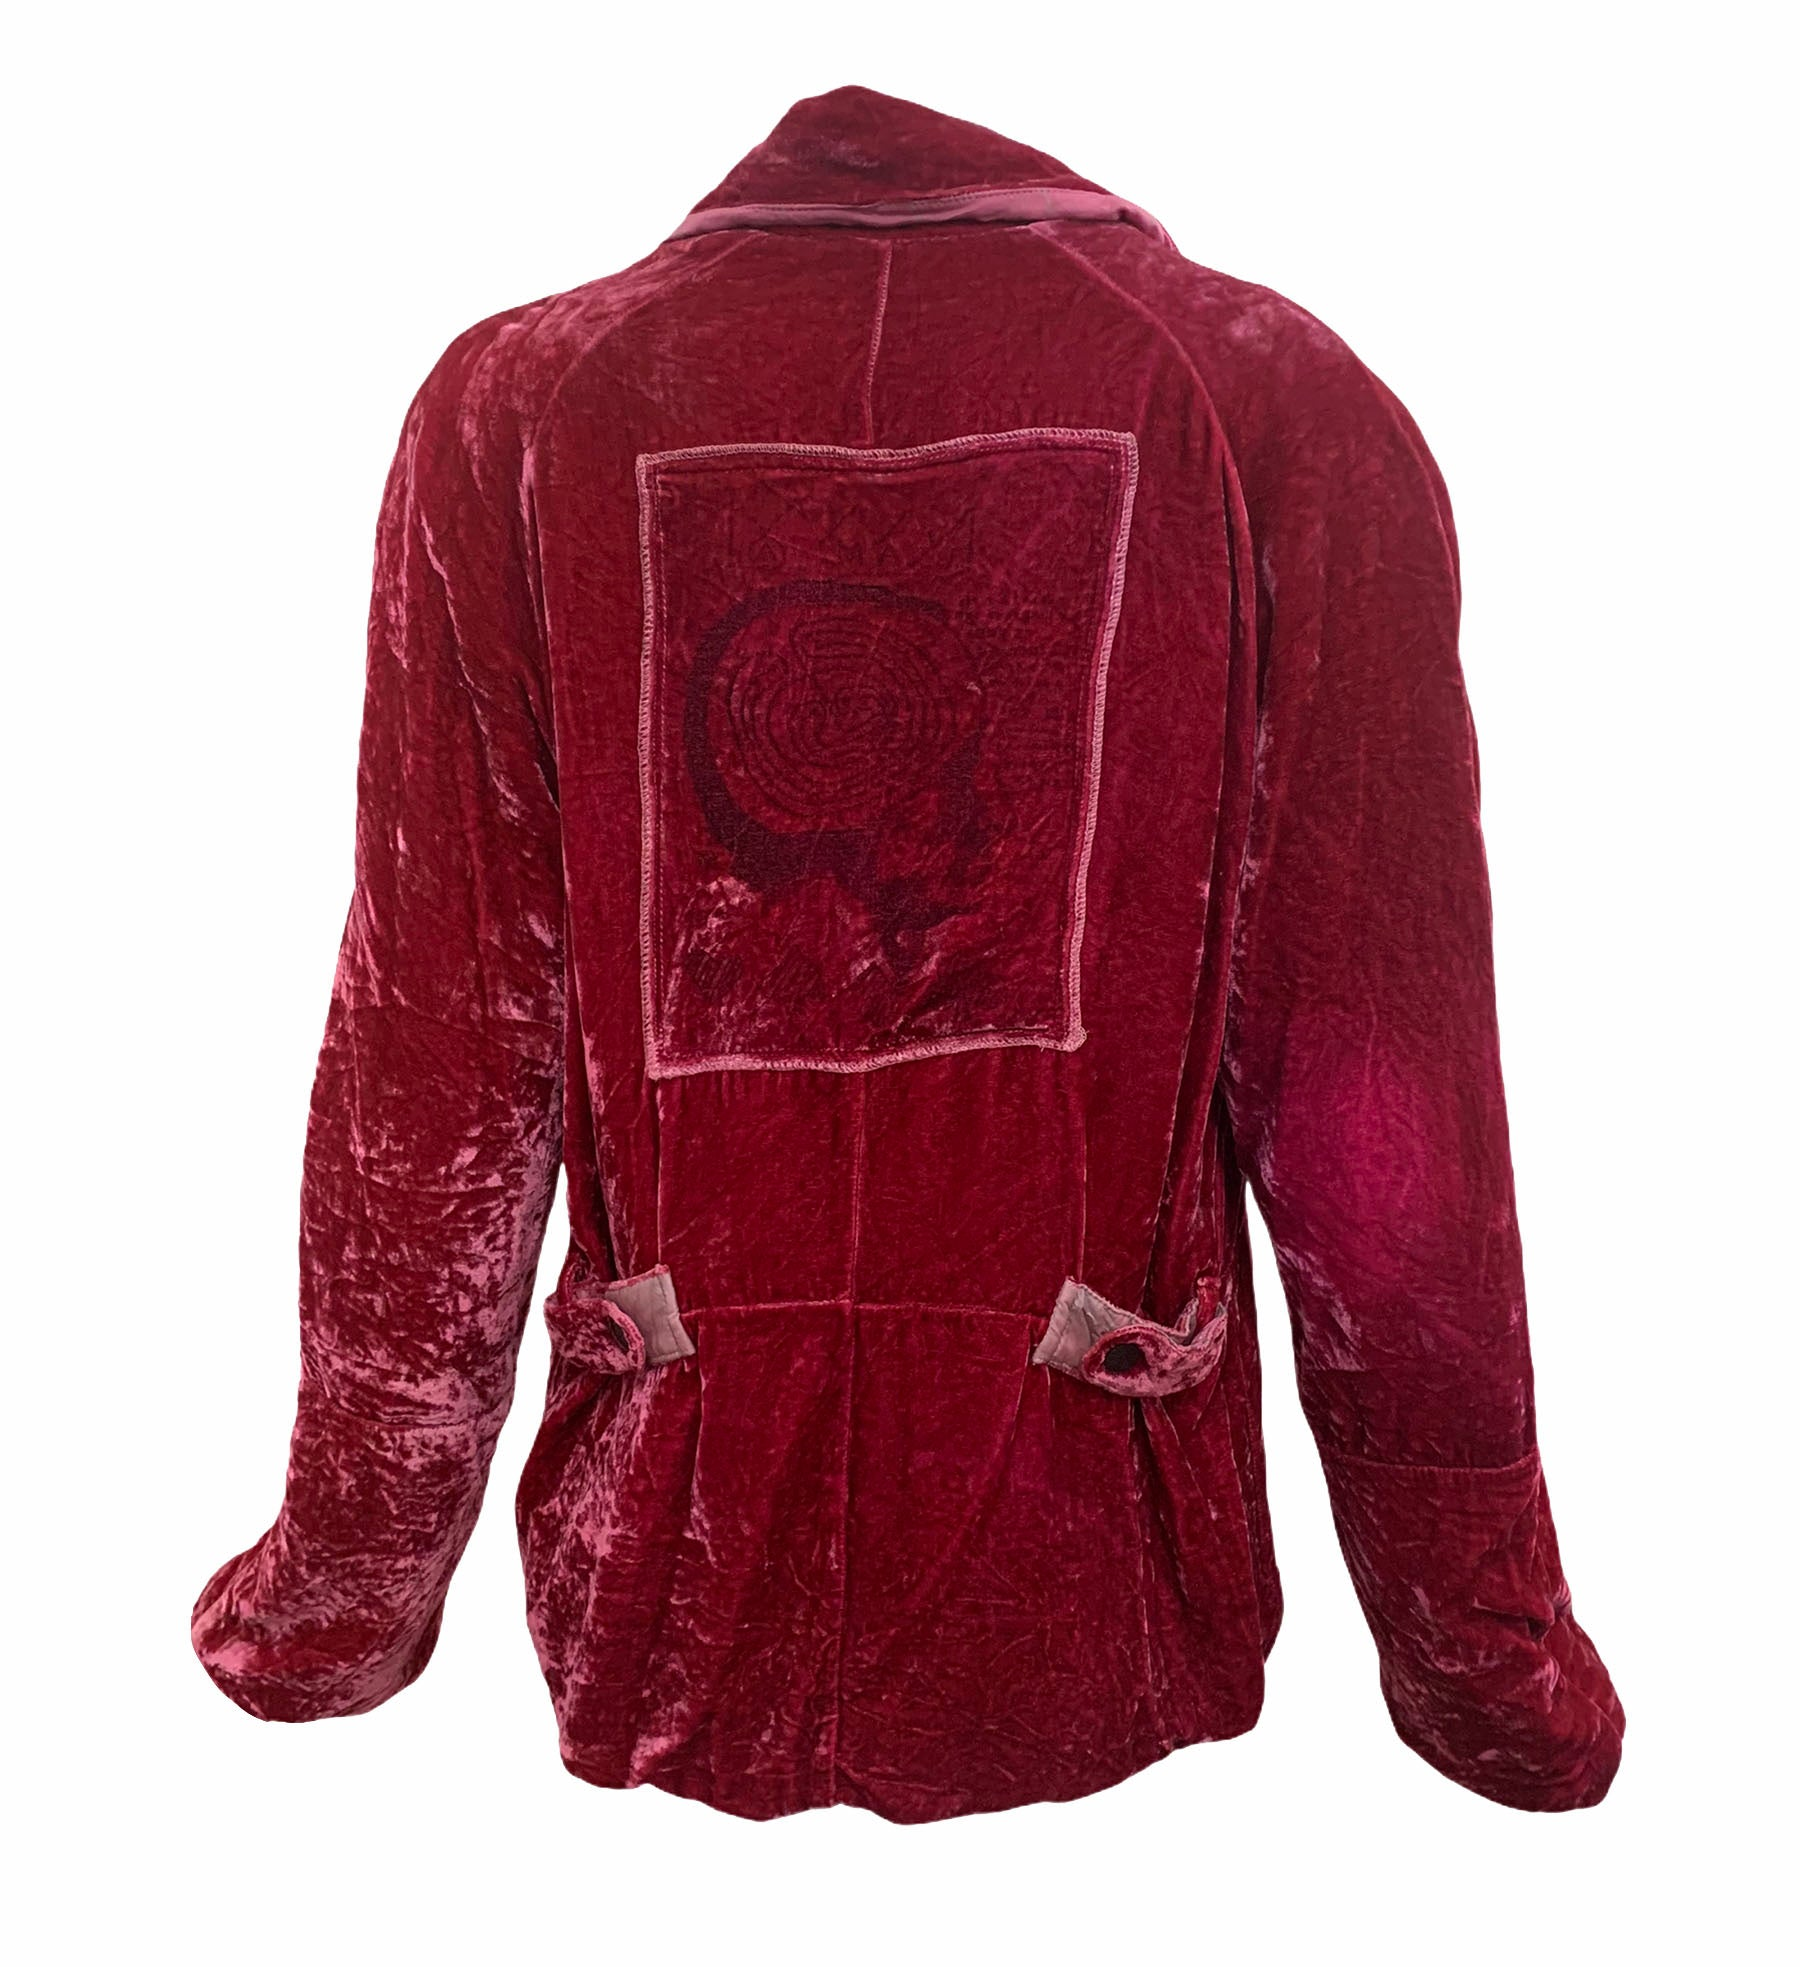 People of the Labyrinths Rasberry Velvet Jacket BACK 3 of 4